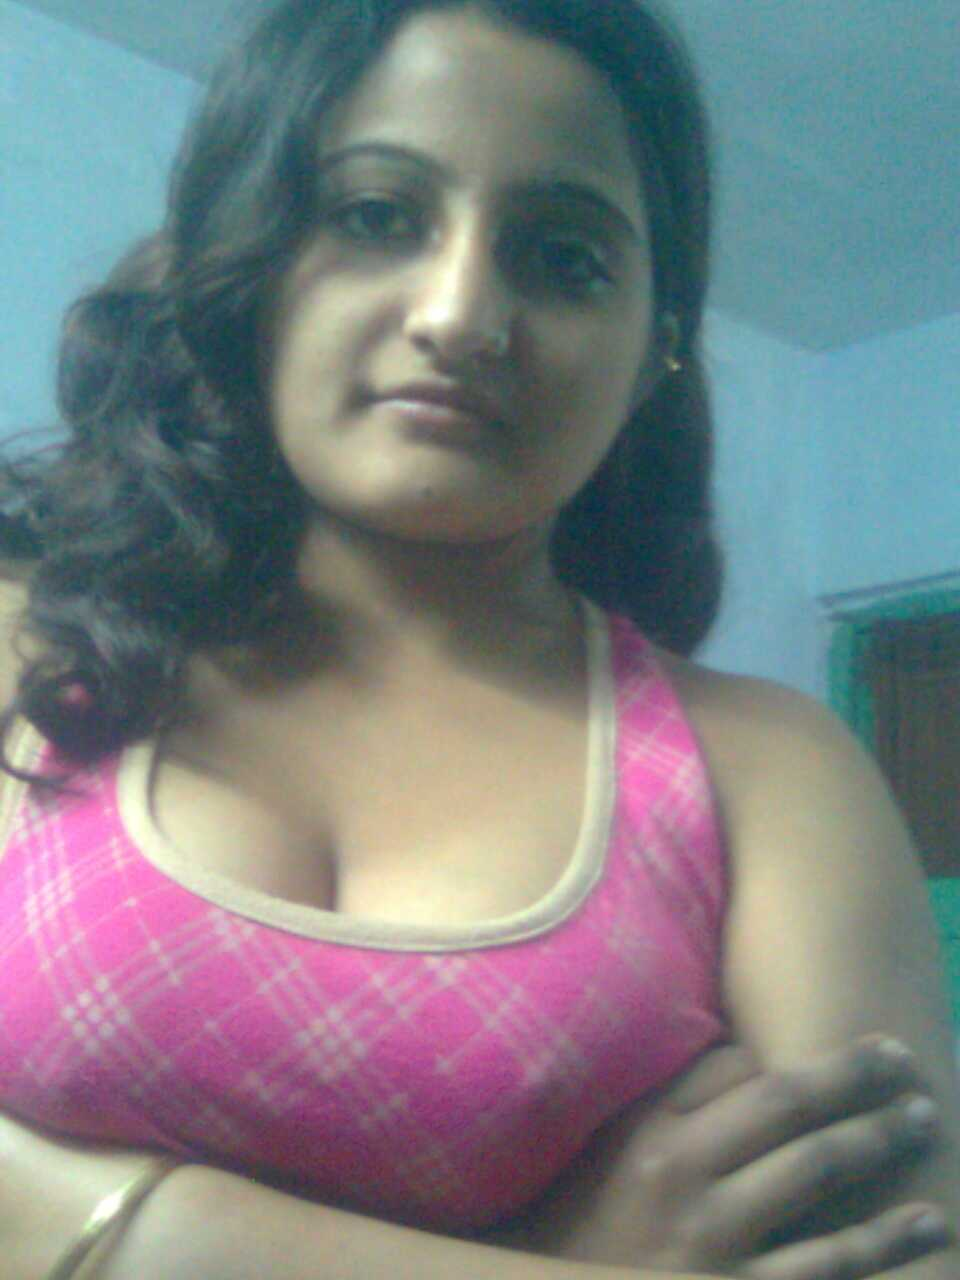 Big Boobs Indian Hot Sey Girl Nip Slip Down Blouse